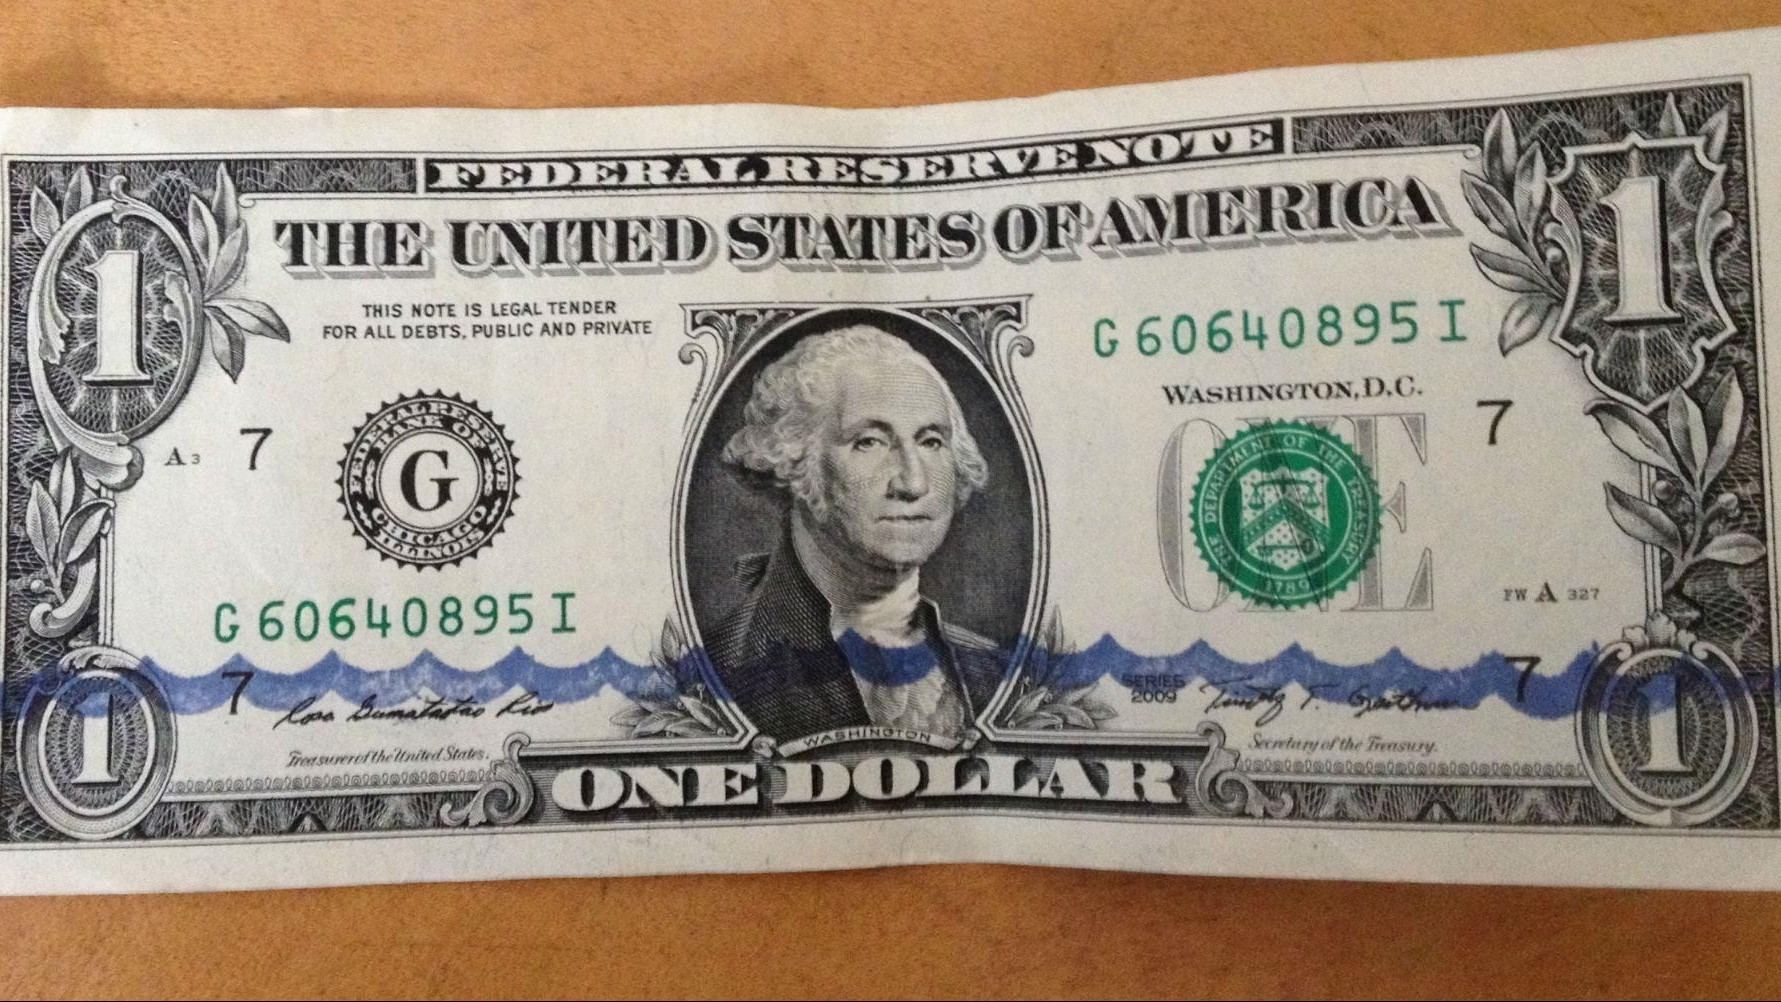 People Are Stamping Rising Sea Levels onto Dollar Bills for Climate Change